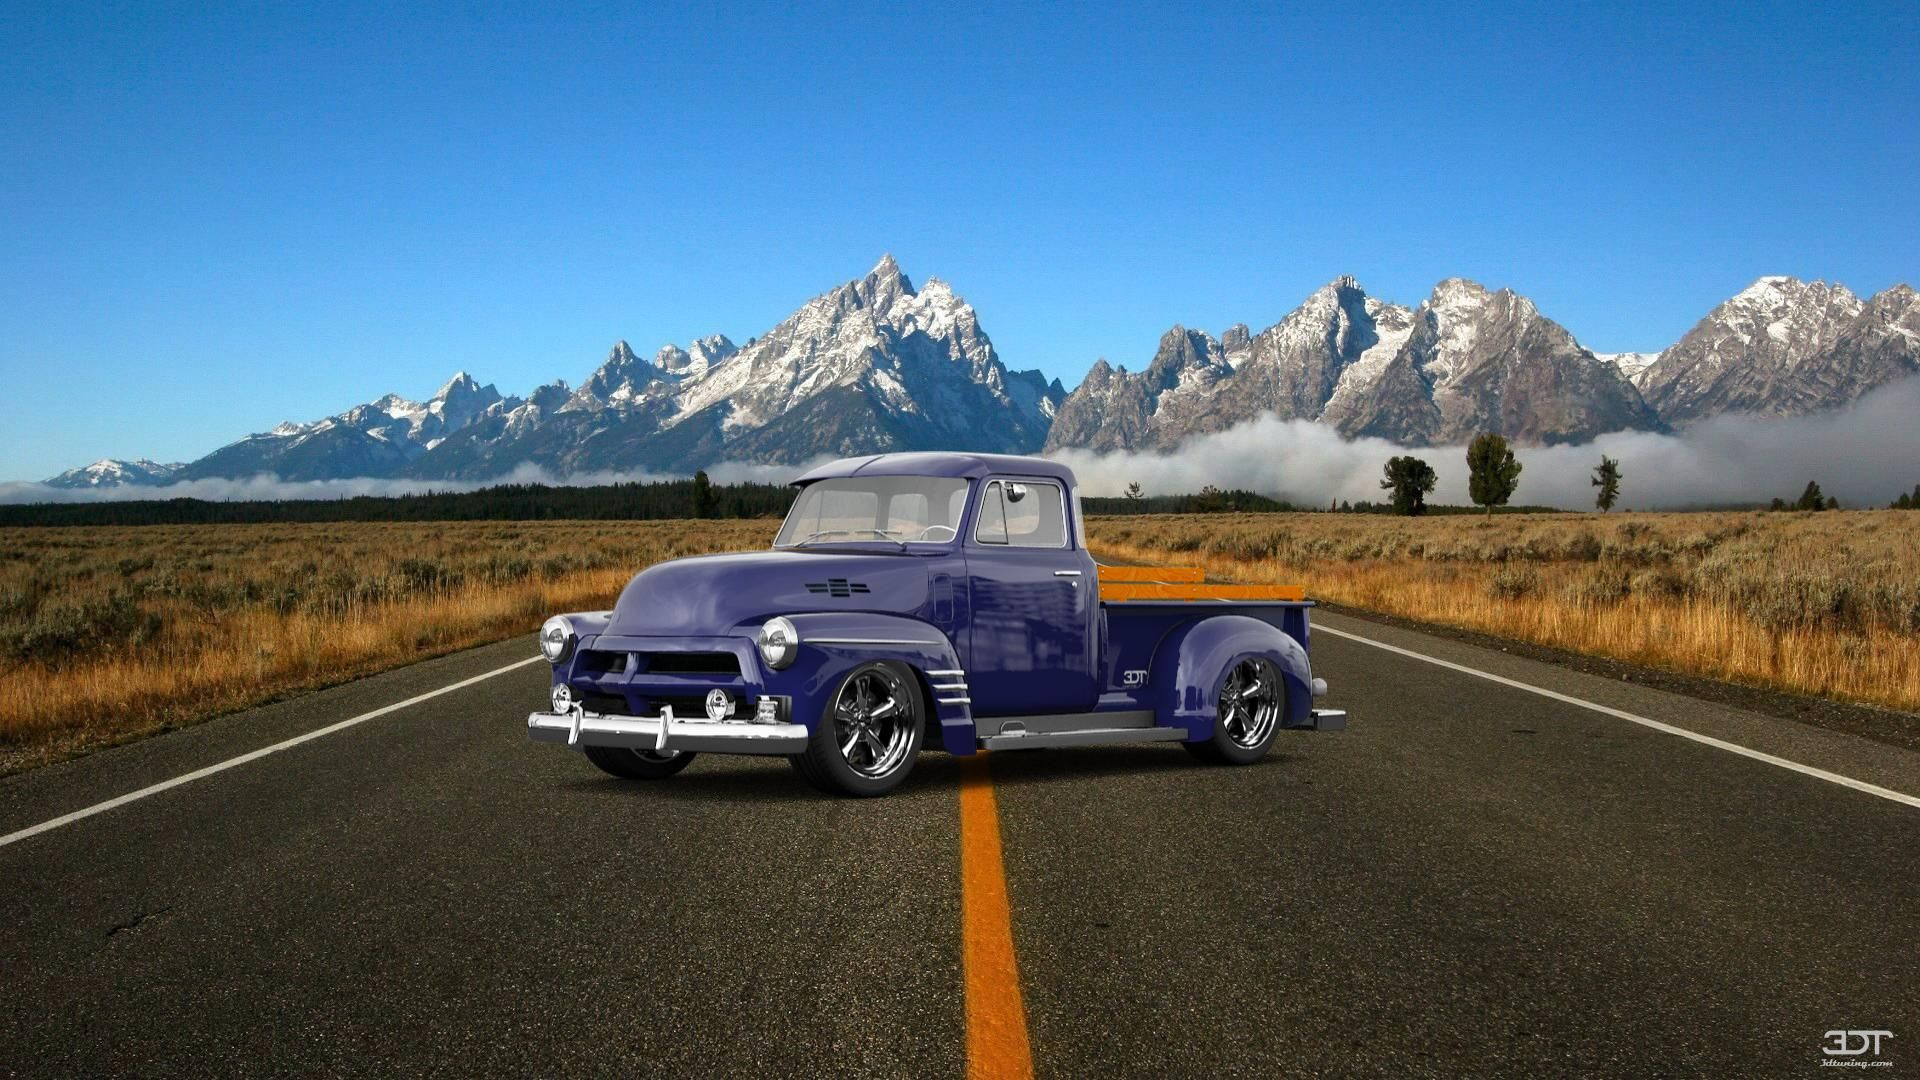 Checkout My Tuning Chevrolet 3100 2954 At 3dtuning 3dtuning